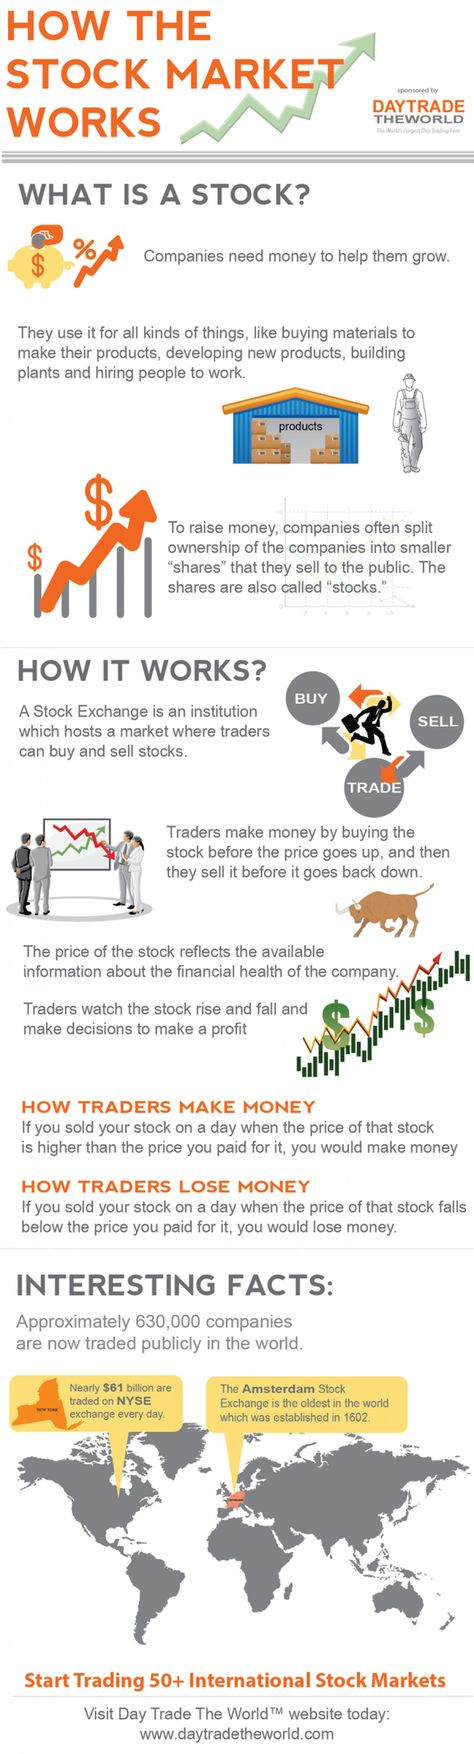 16 best stock market ups and downs images on pinterest stock 16 best stock market ups and downs images on pinterest stock market investing and finance biocorpaavc